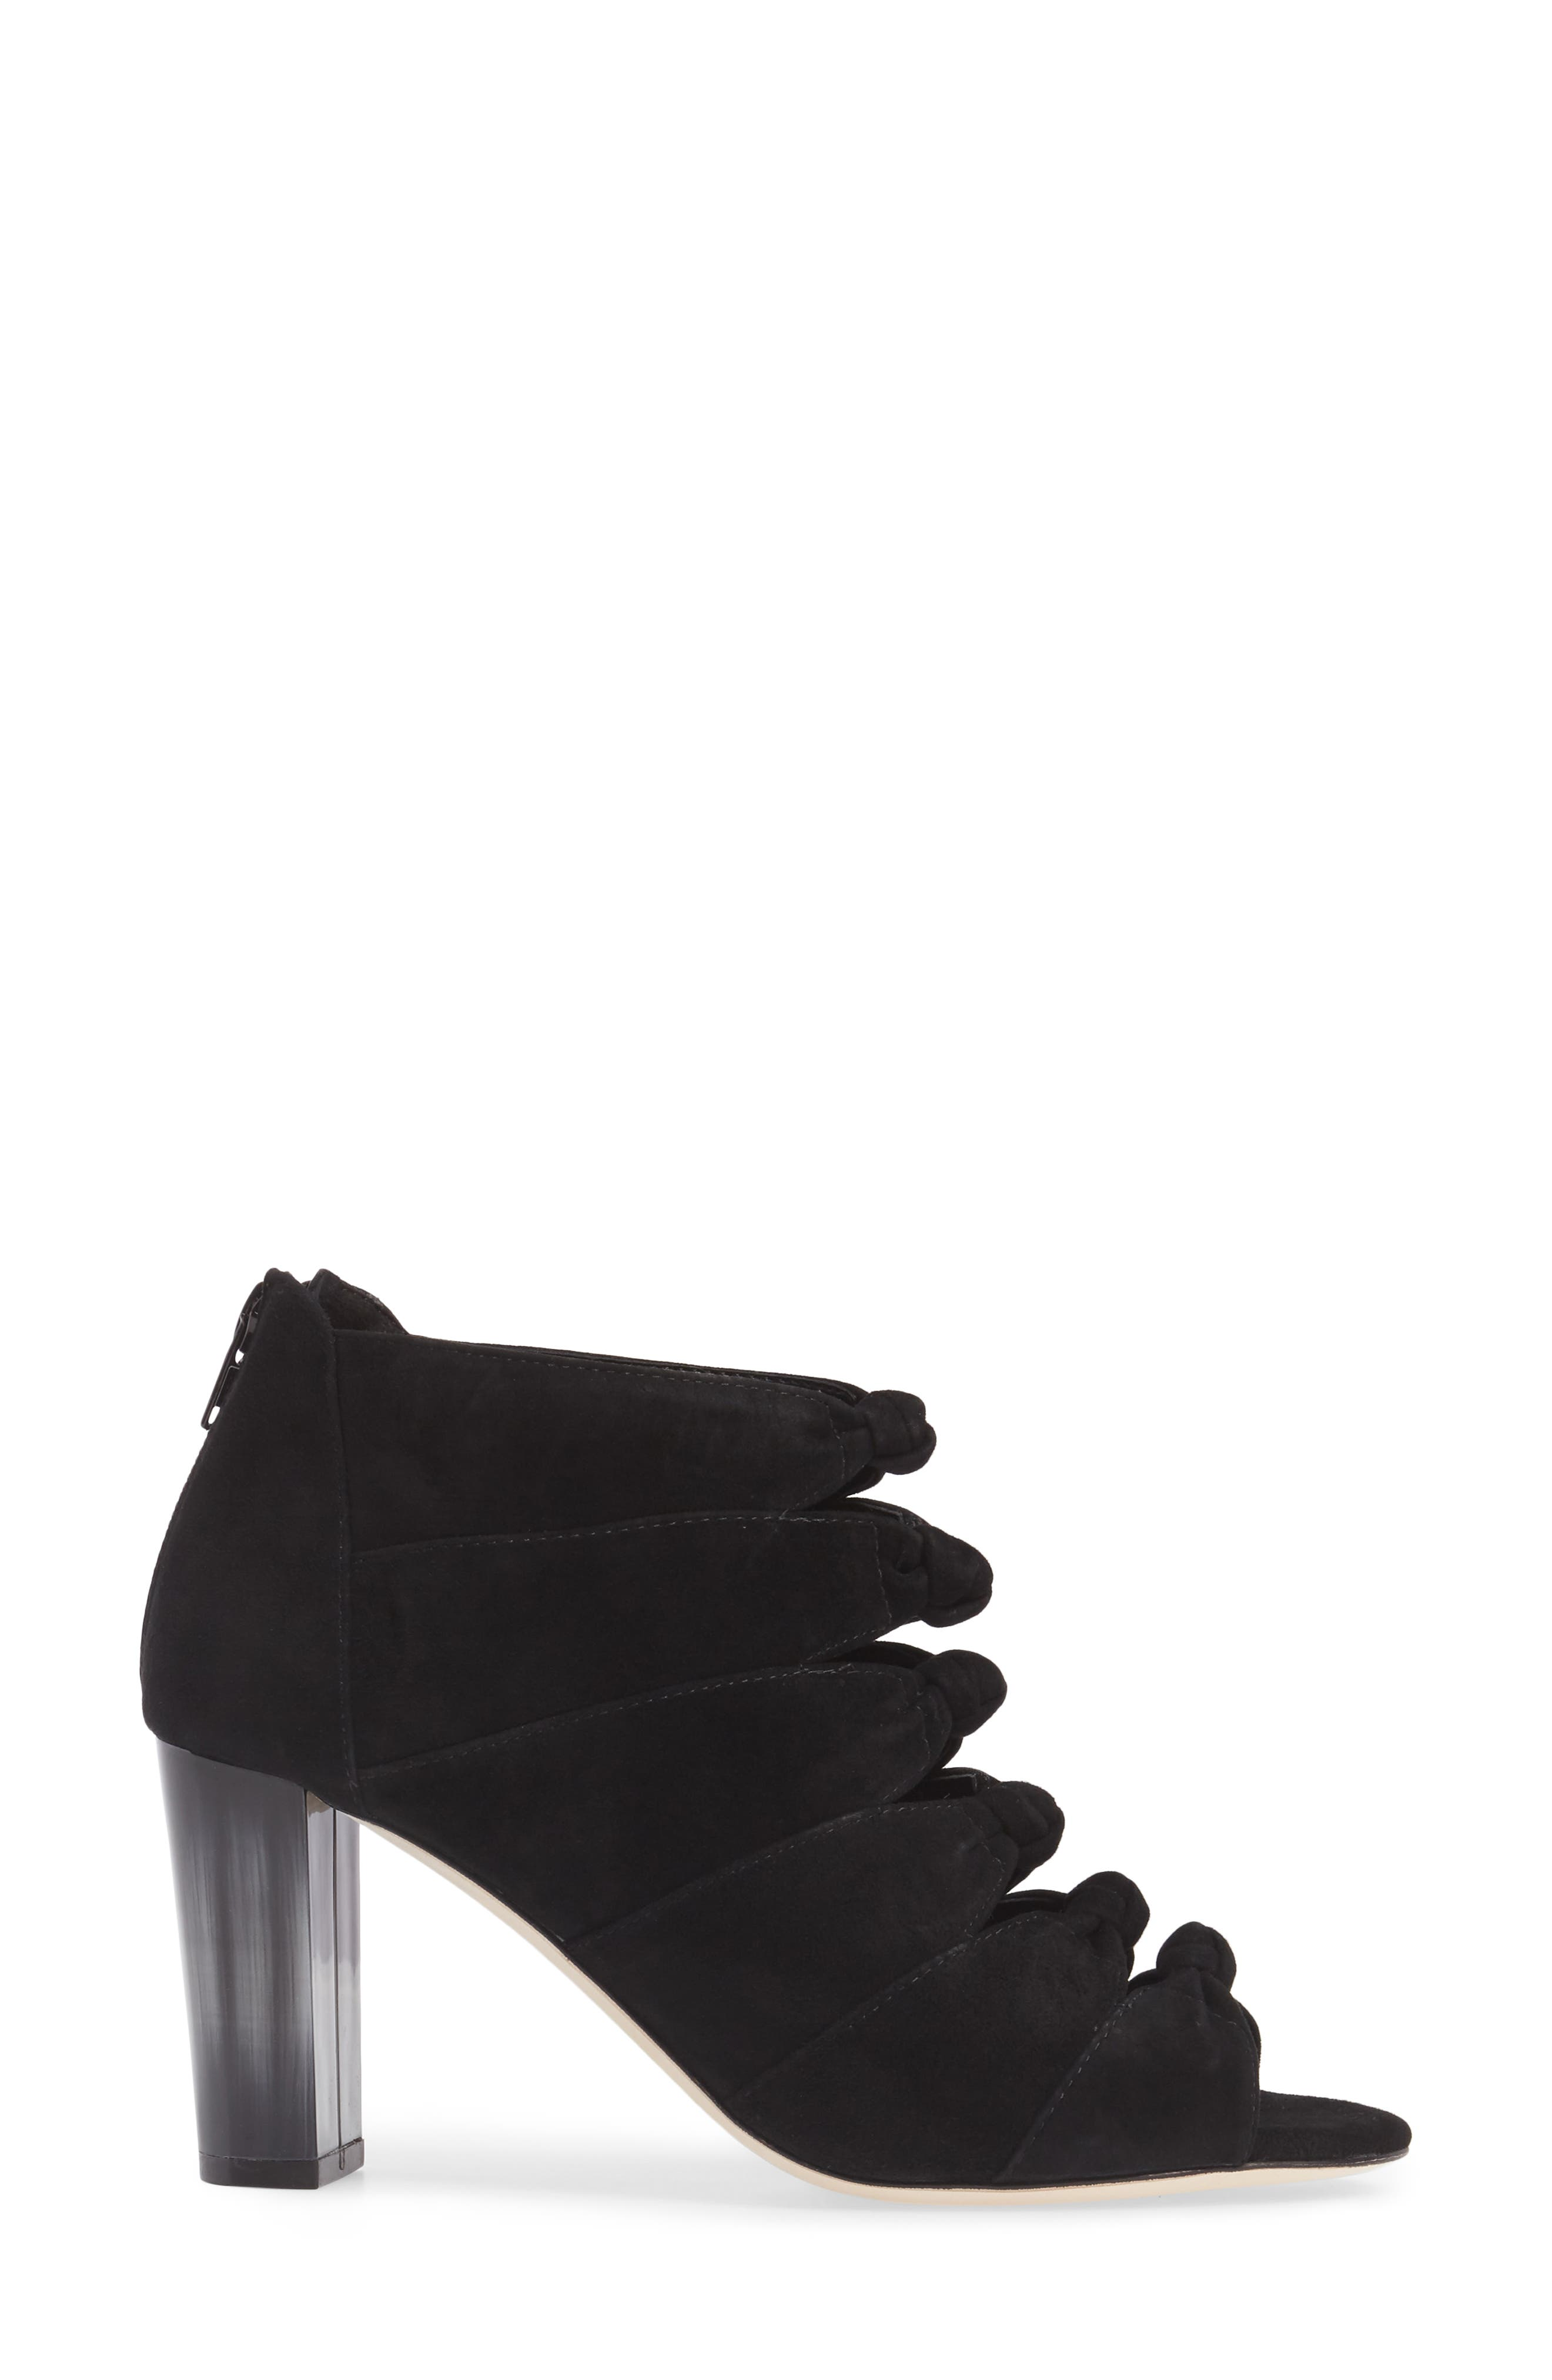 Betsy Open Toe Bootie,                             Alternate thumbnail 3, color,                             001